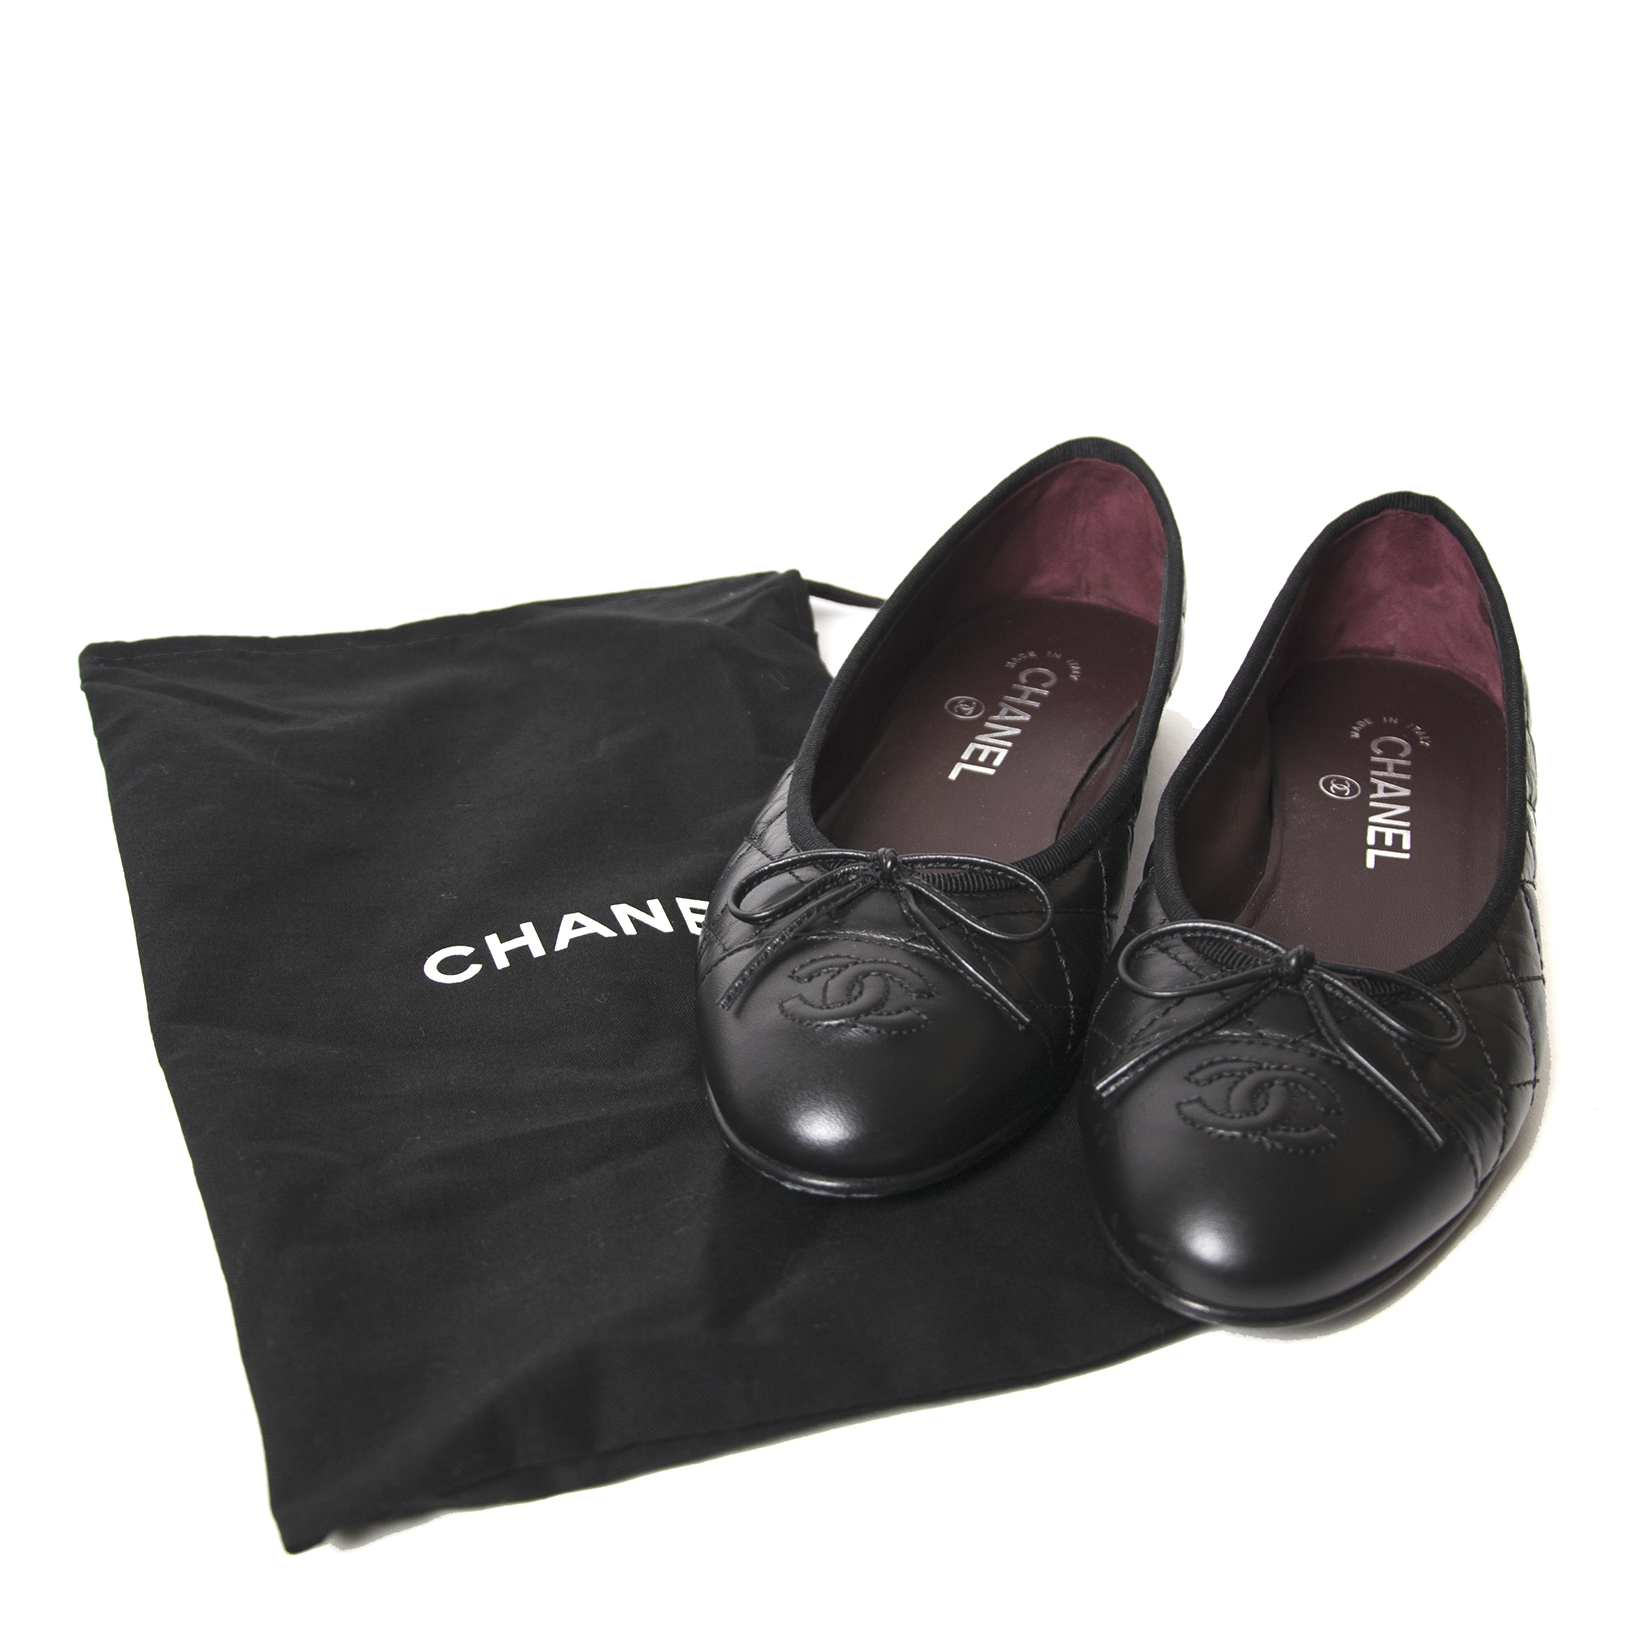 9b3bdb8de29 ... chanel black quilted leather cambon ballerinas now for sale at labellov  vintage fashion webshop belgium